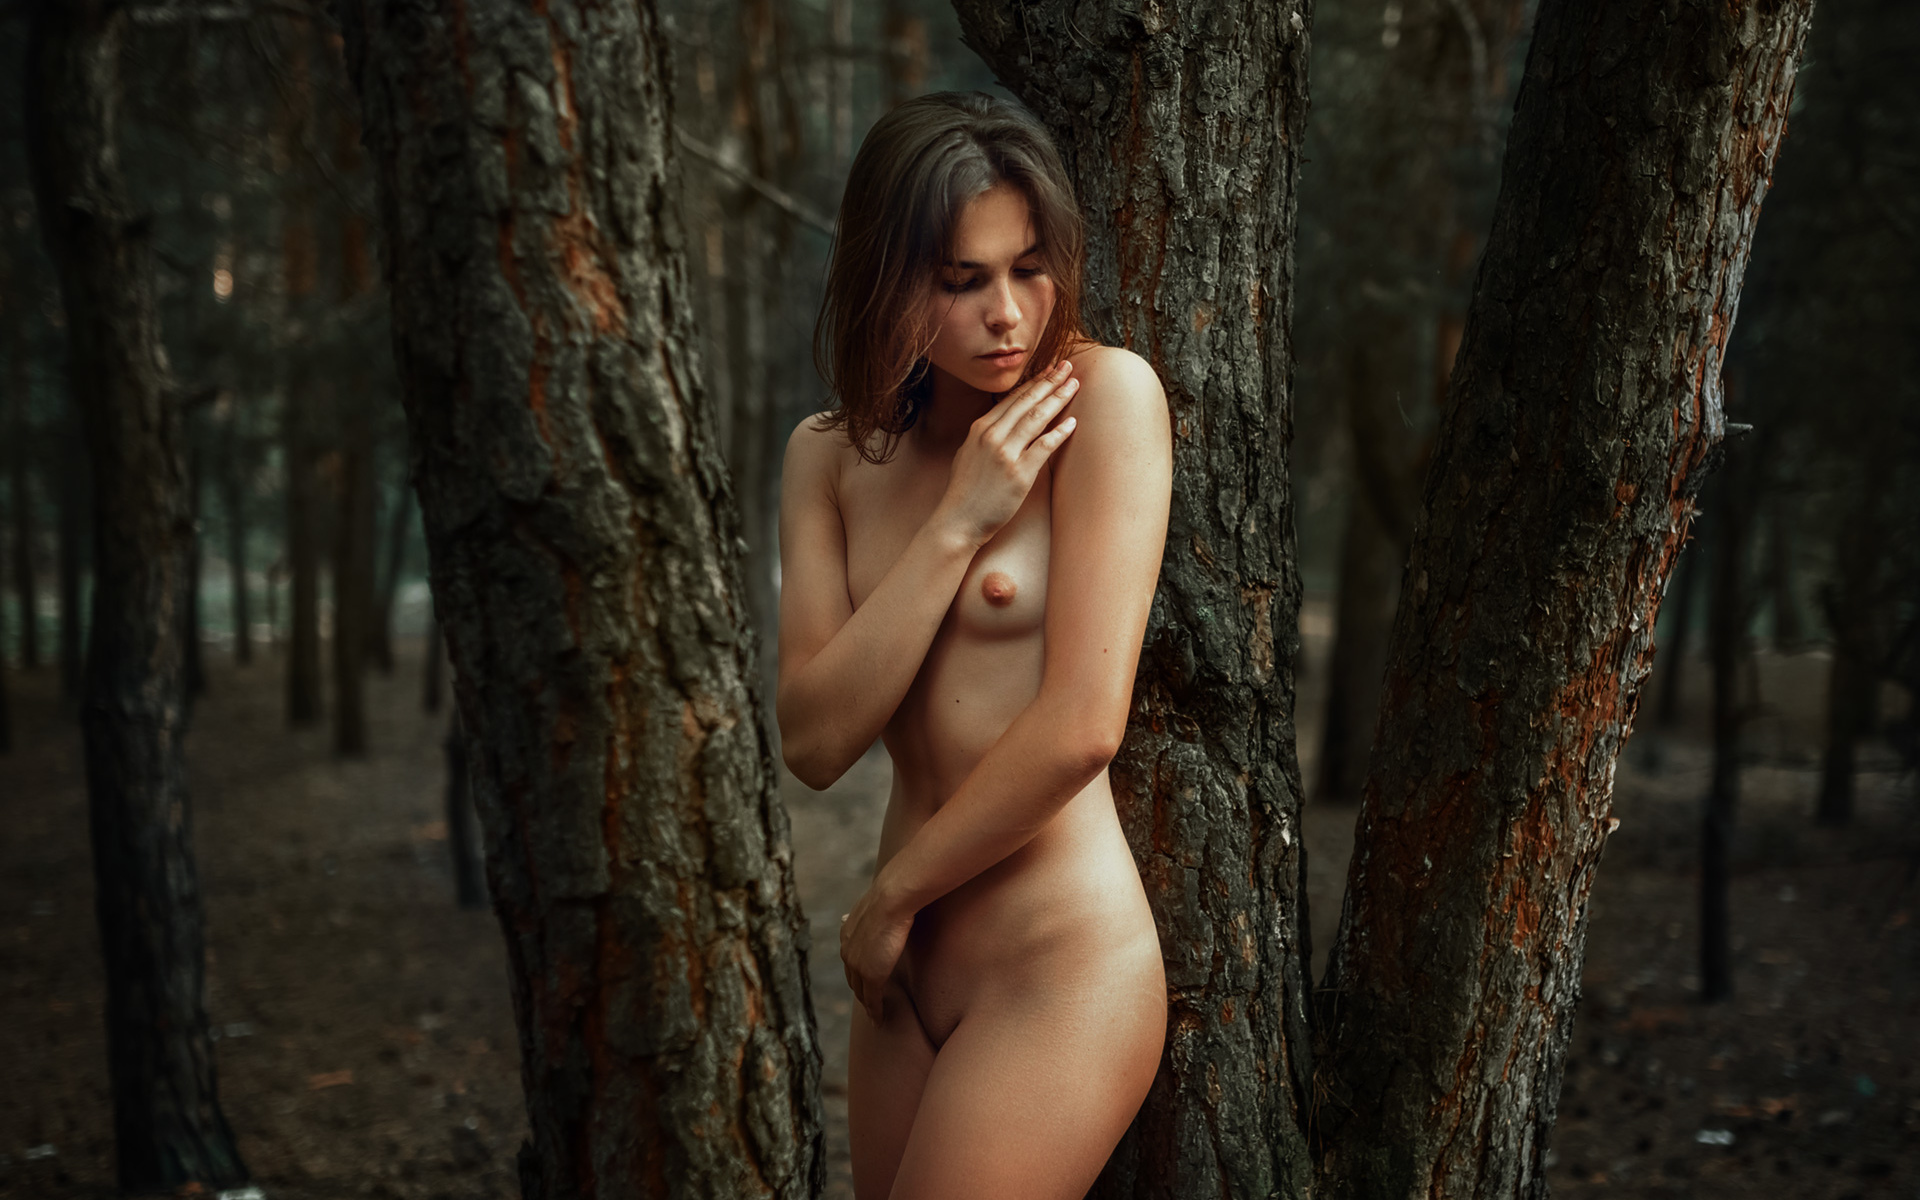 Photo of nude woman walking in a forest by a river in nature